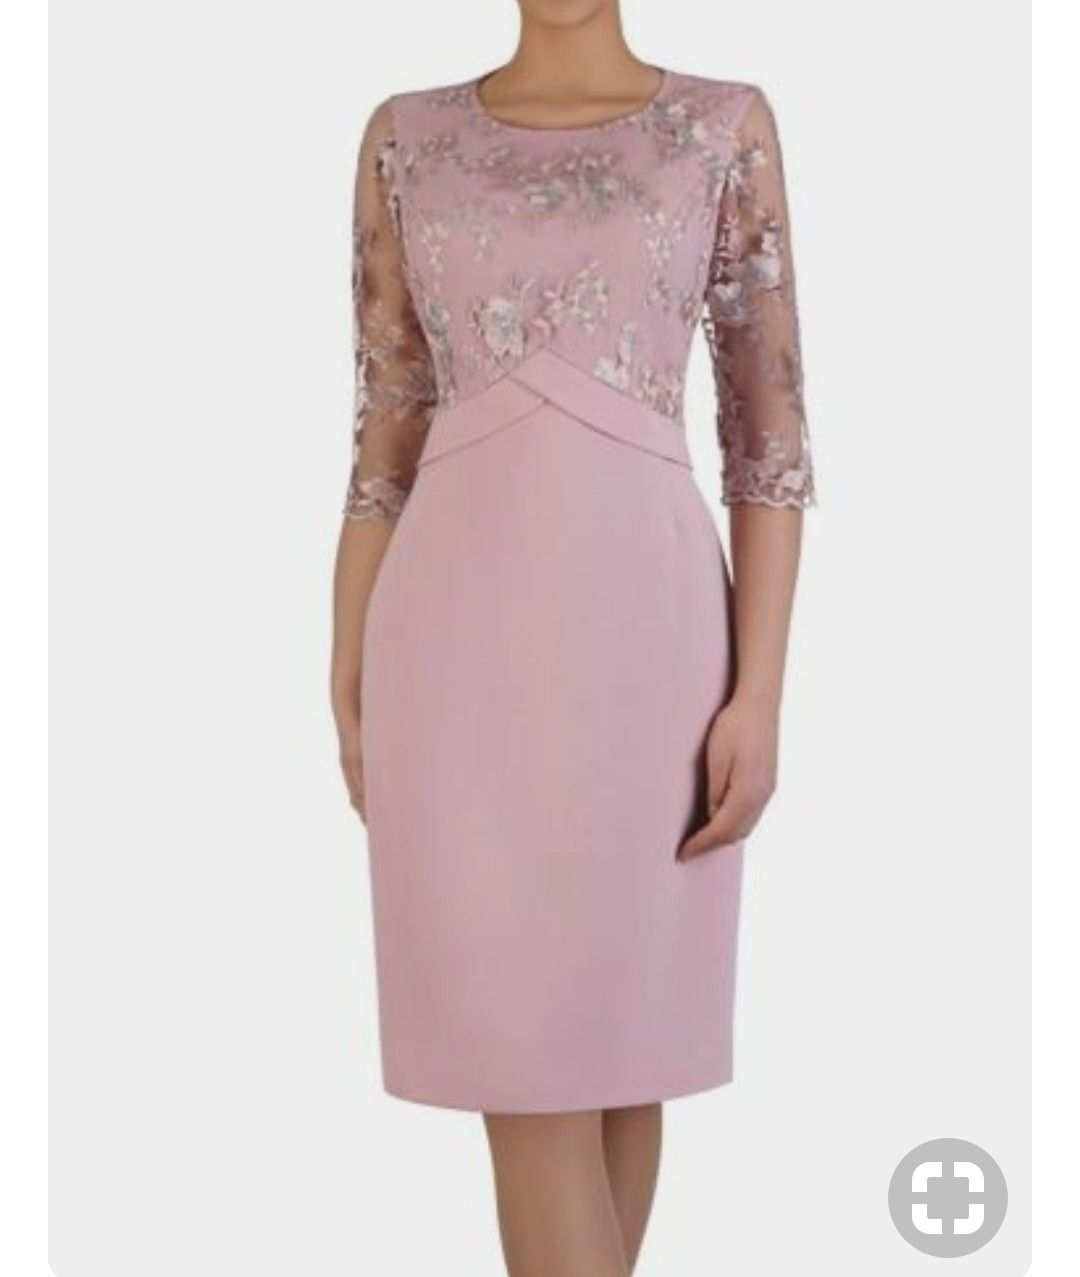 Pin by inara on Модная одежда pinterest clothes formal wear and